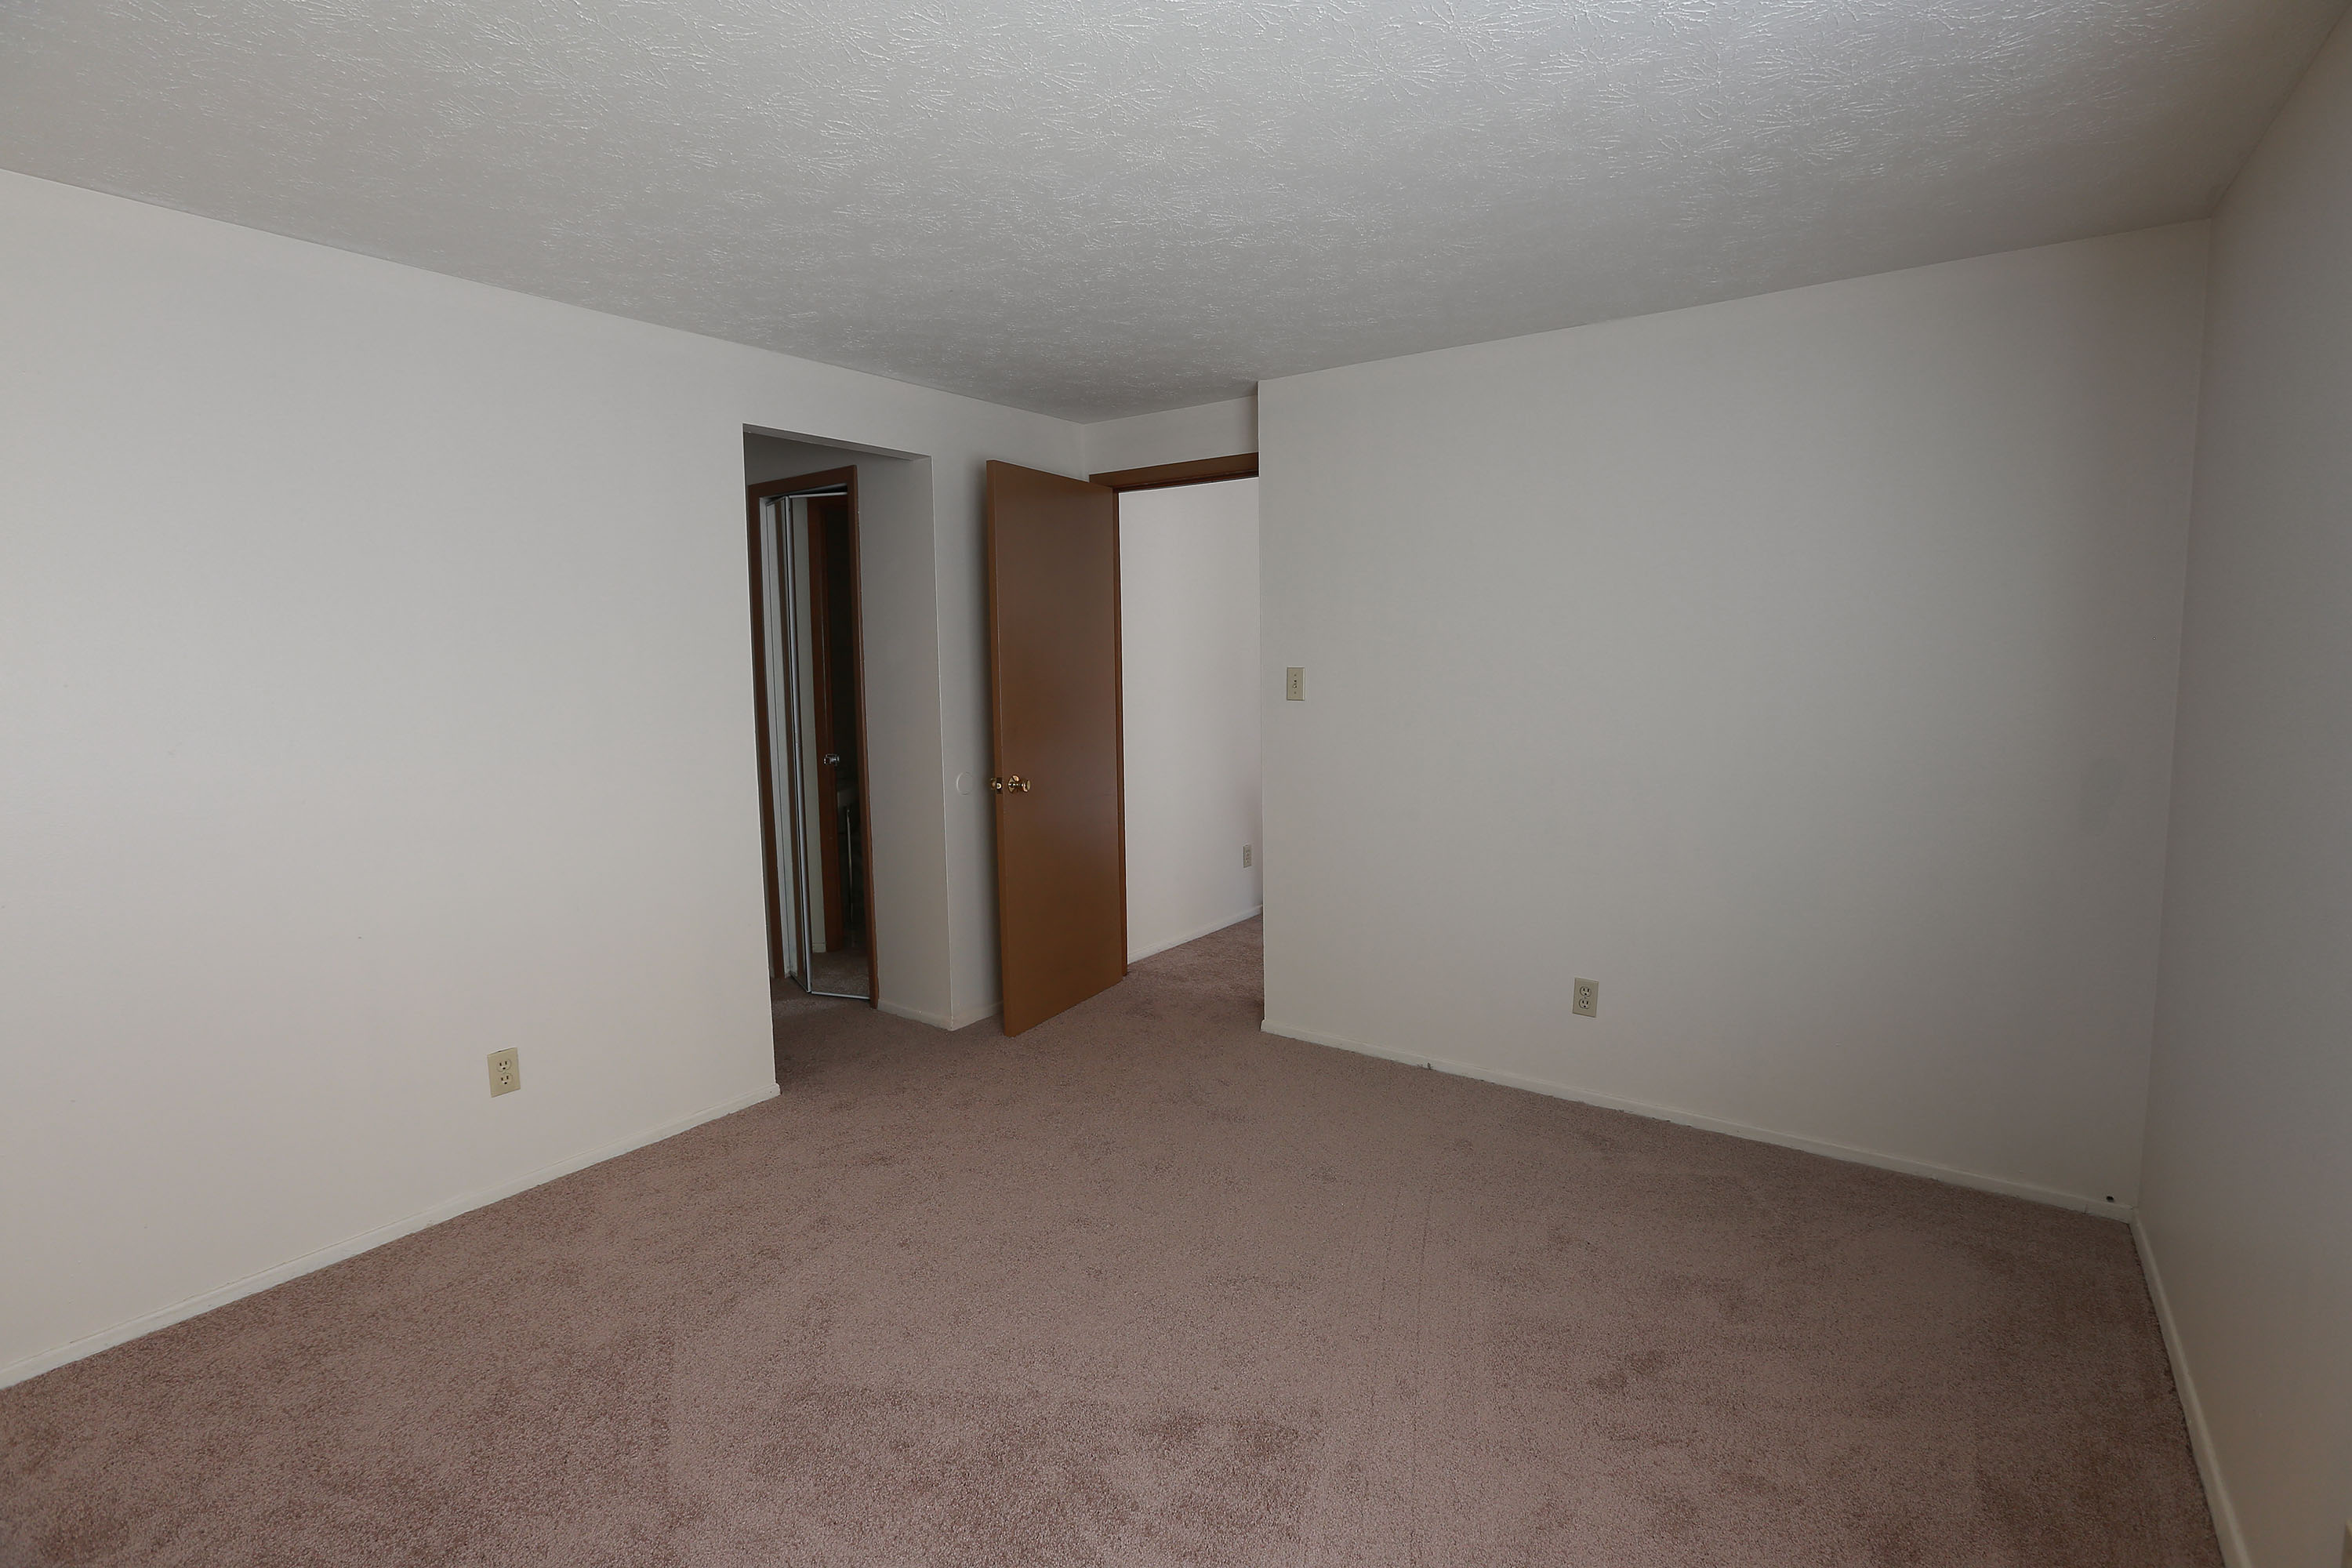 2C Bedroom #1 at the Greenridge on Euclid Apartments in Euclid, OH